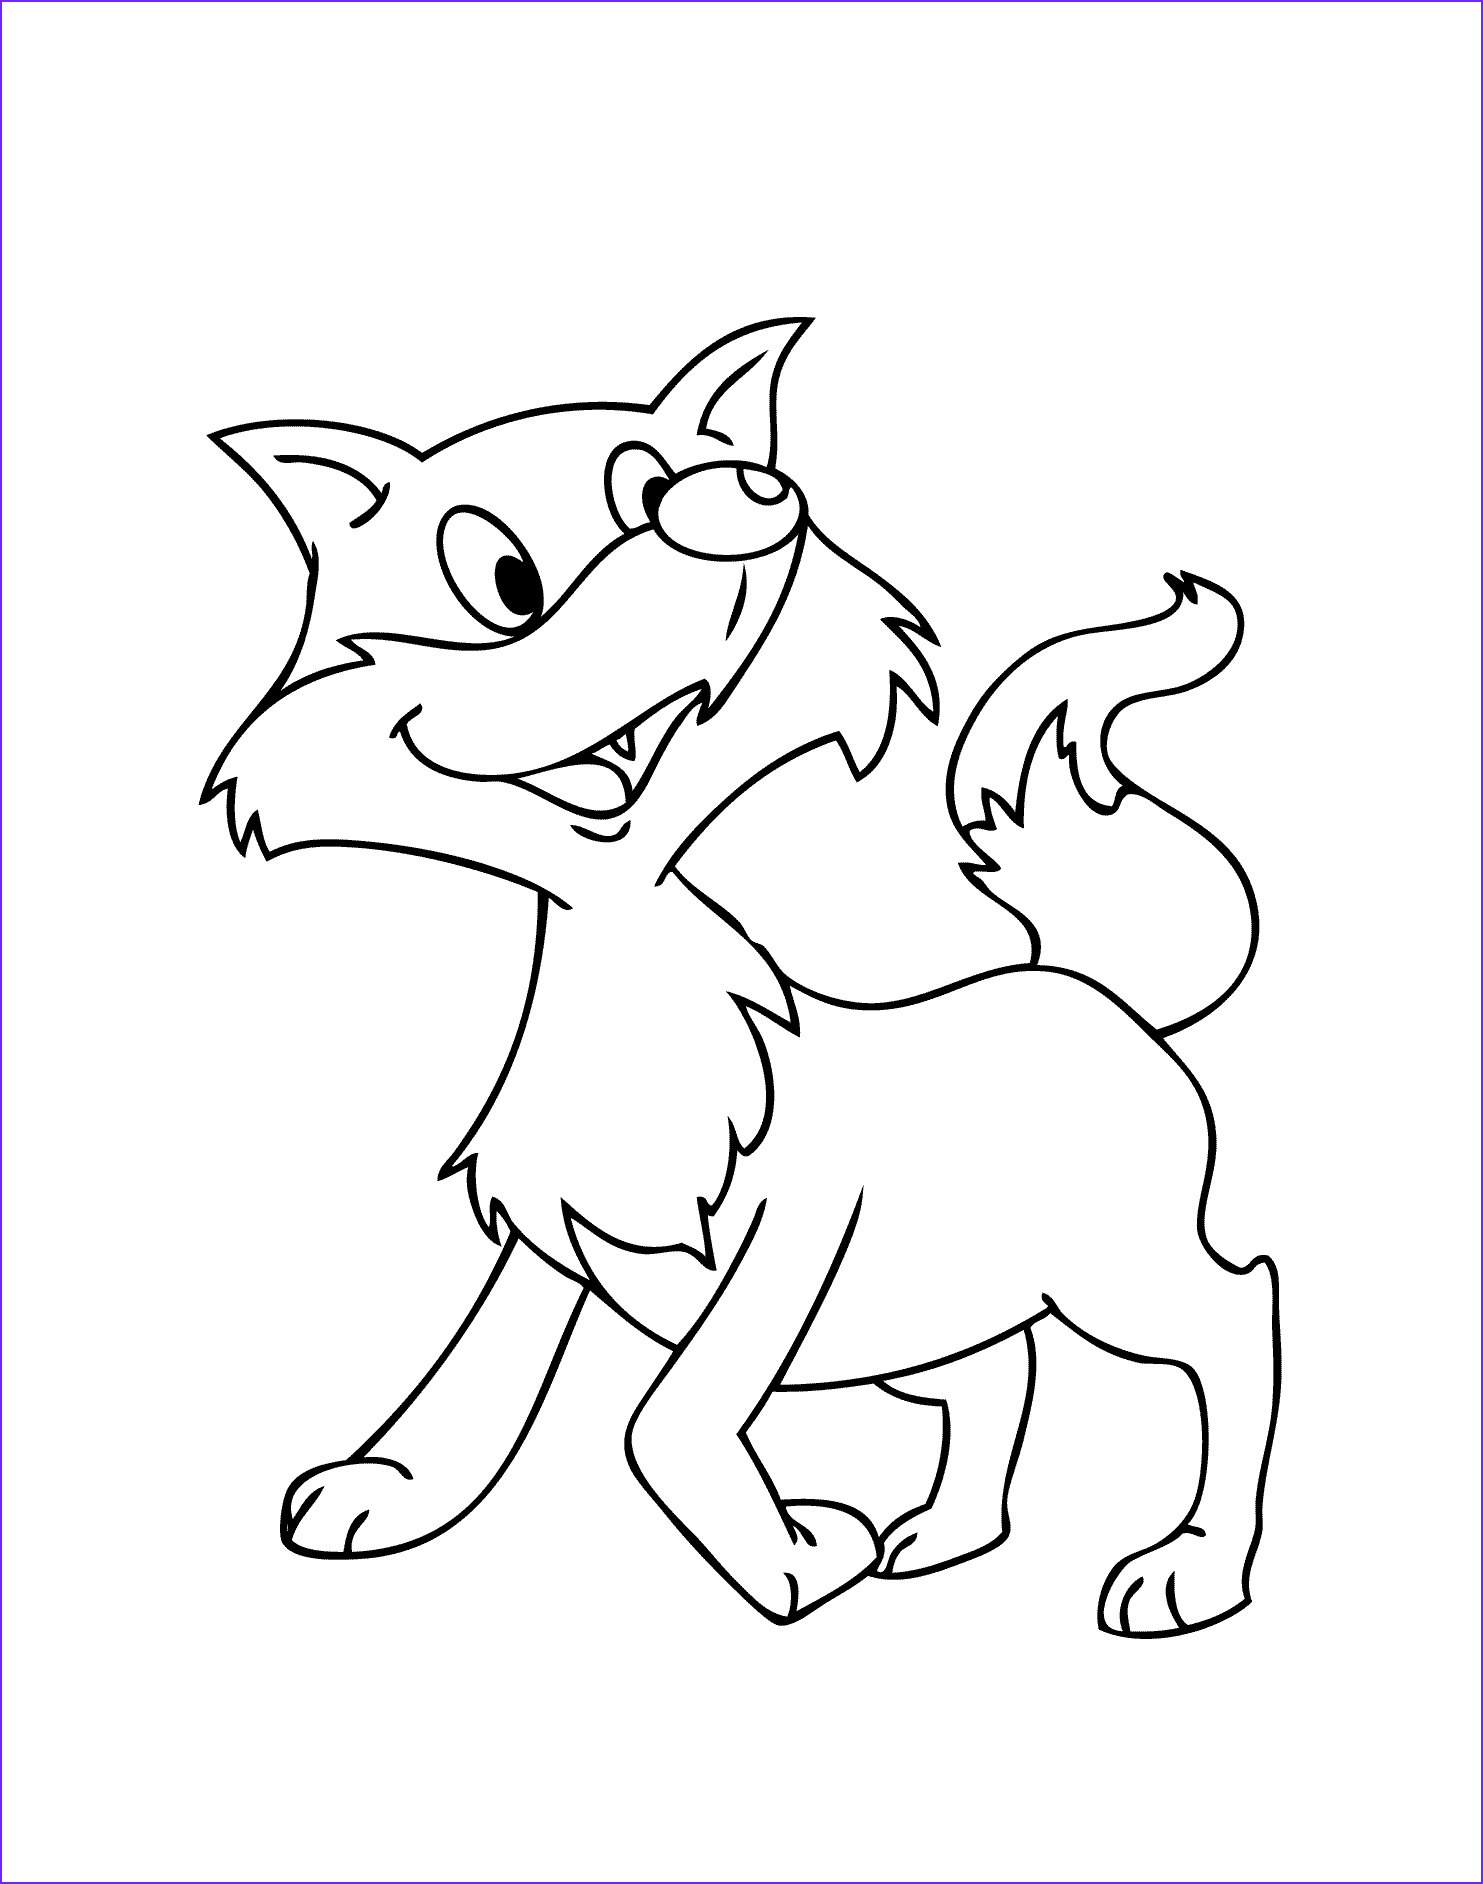 Realistic Fox Coloring Pages Inspirational Stock Realistic Fox Coloring Pages at Getcolorings